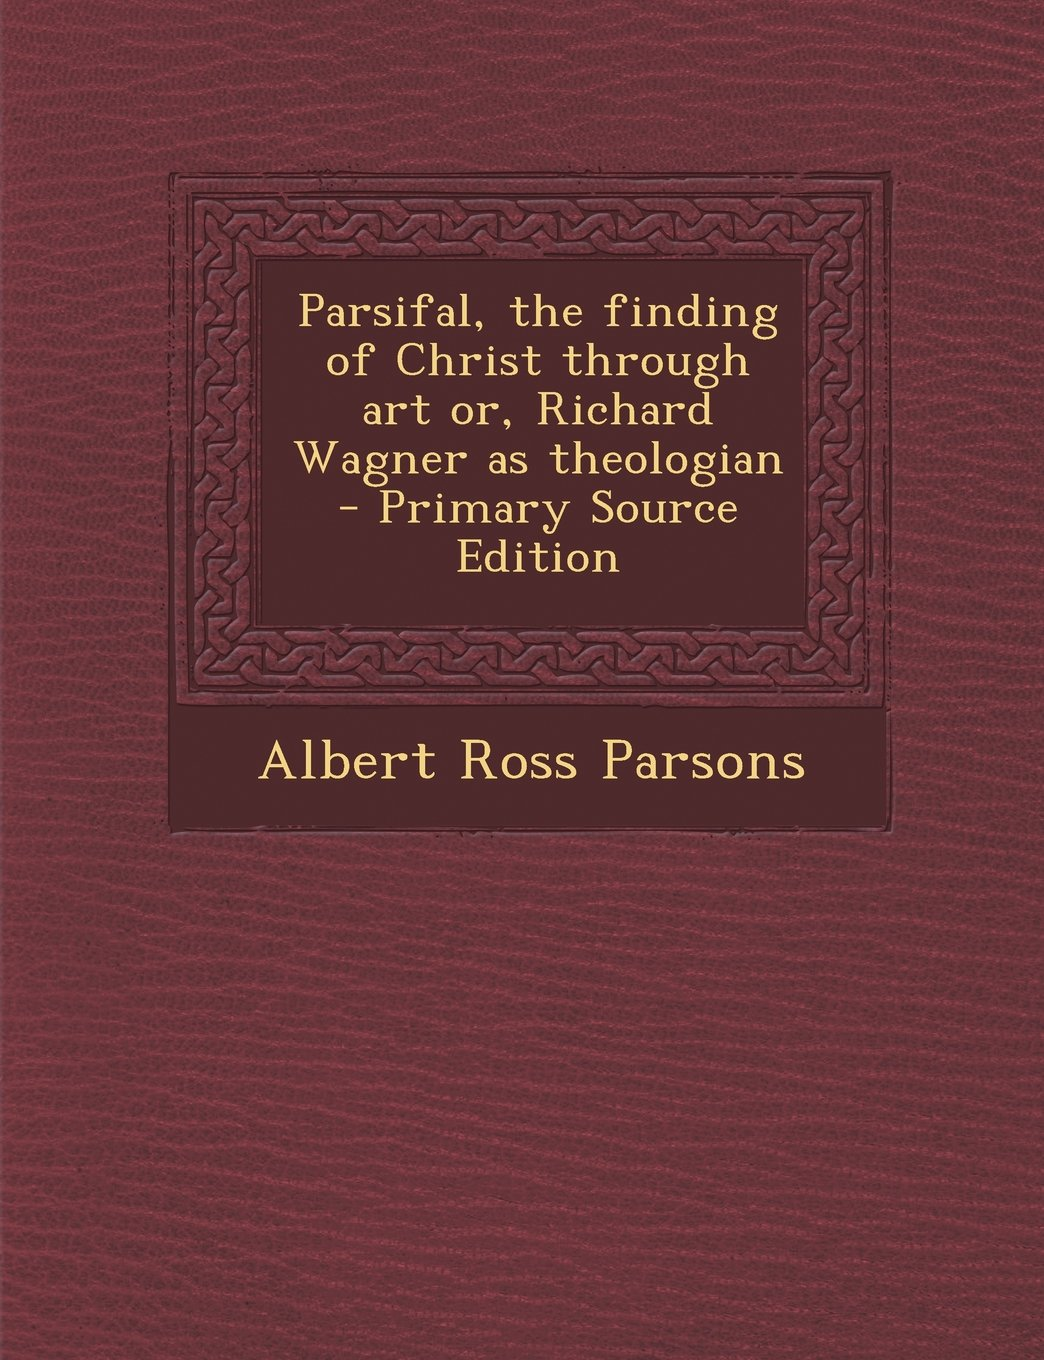 Parsifal, the finding of Christ through art or, Richard Wagner as theologian  - Primary Source Edition pdf